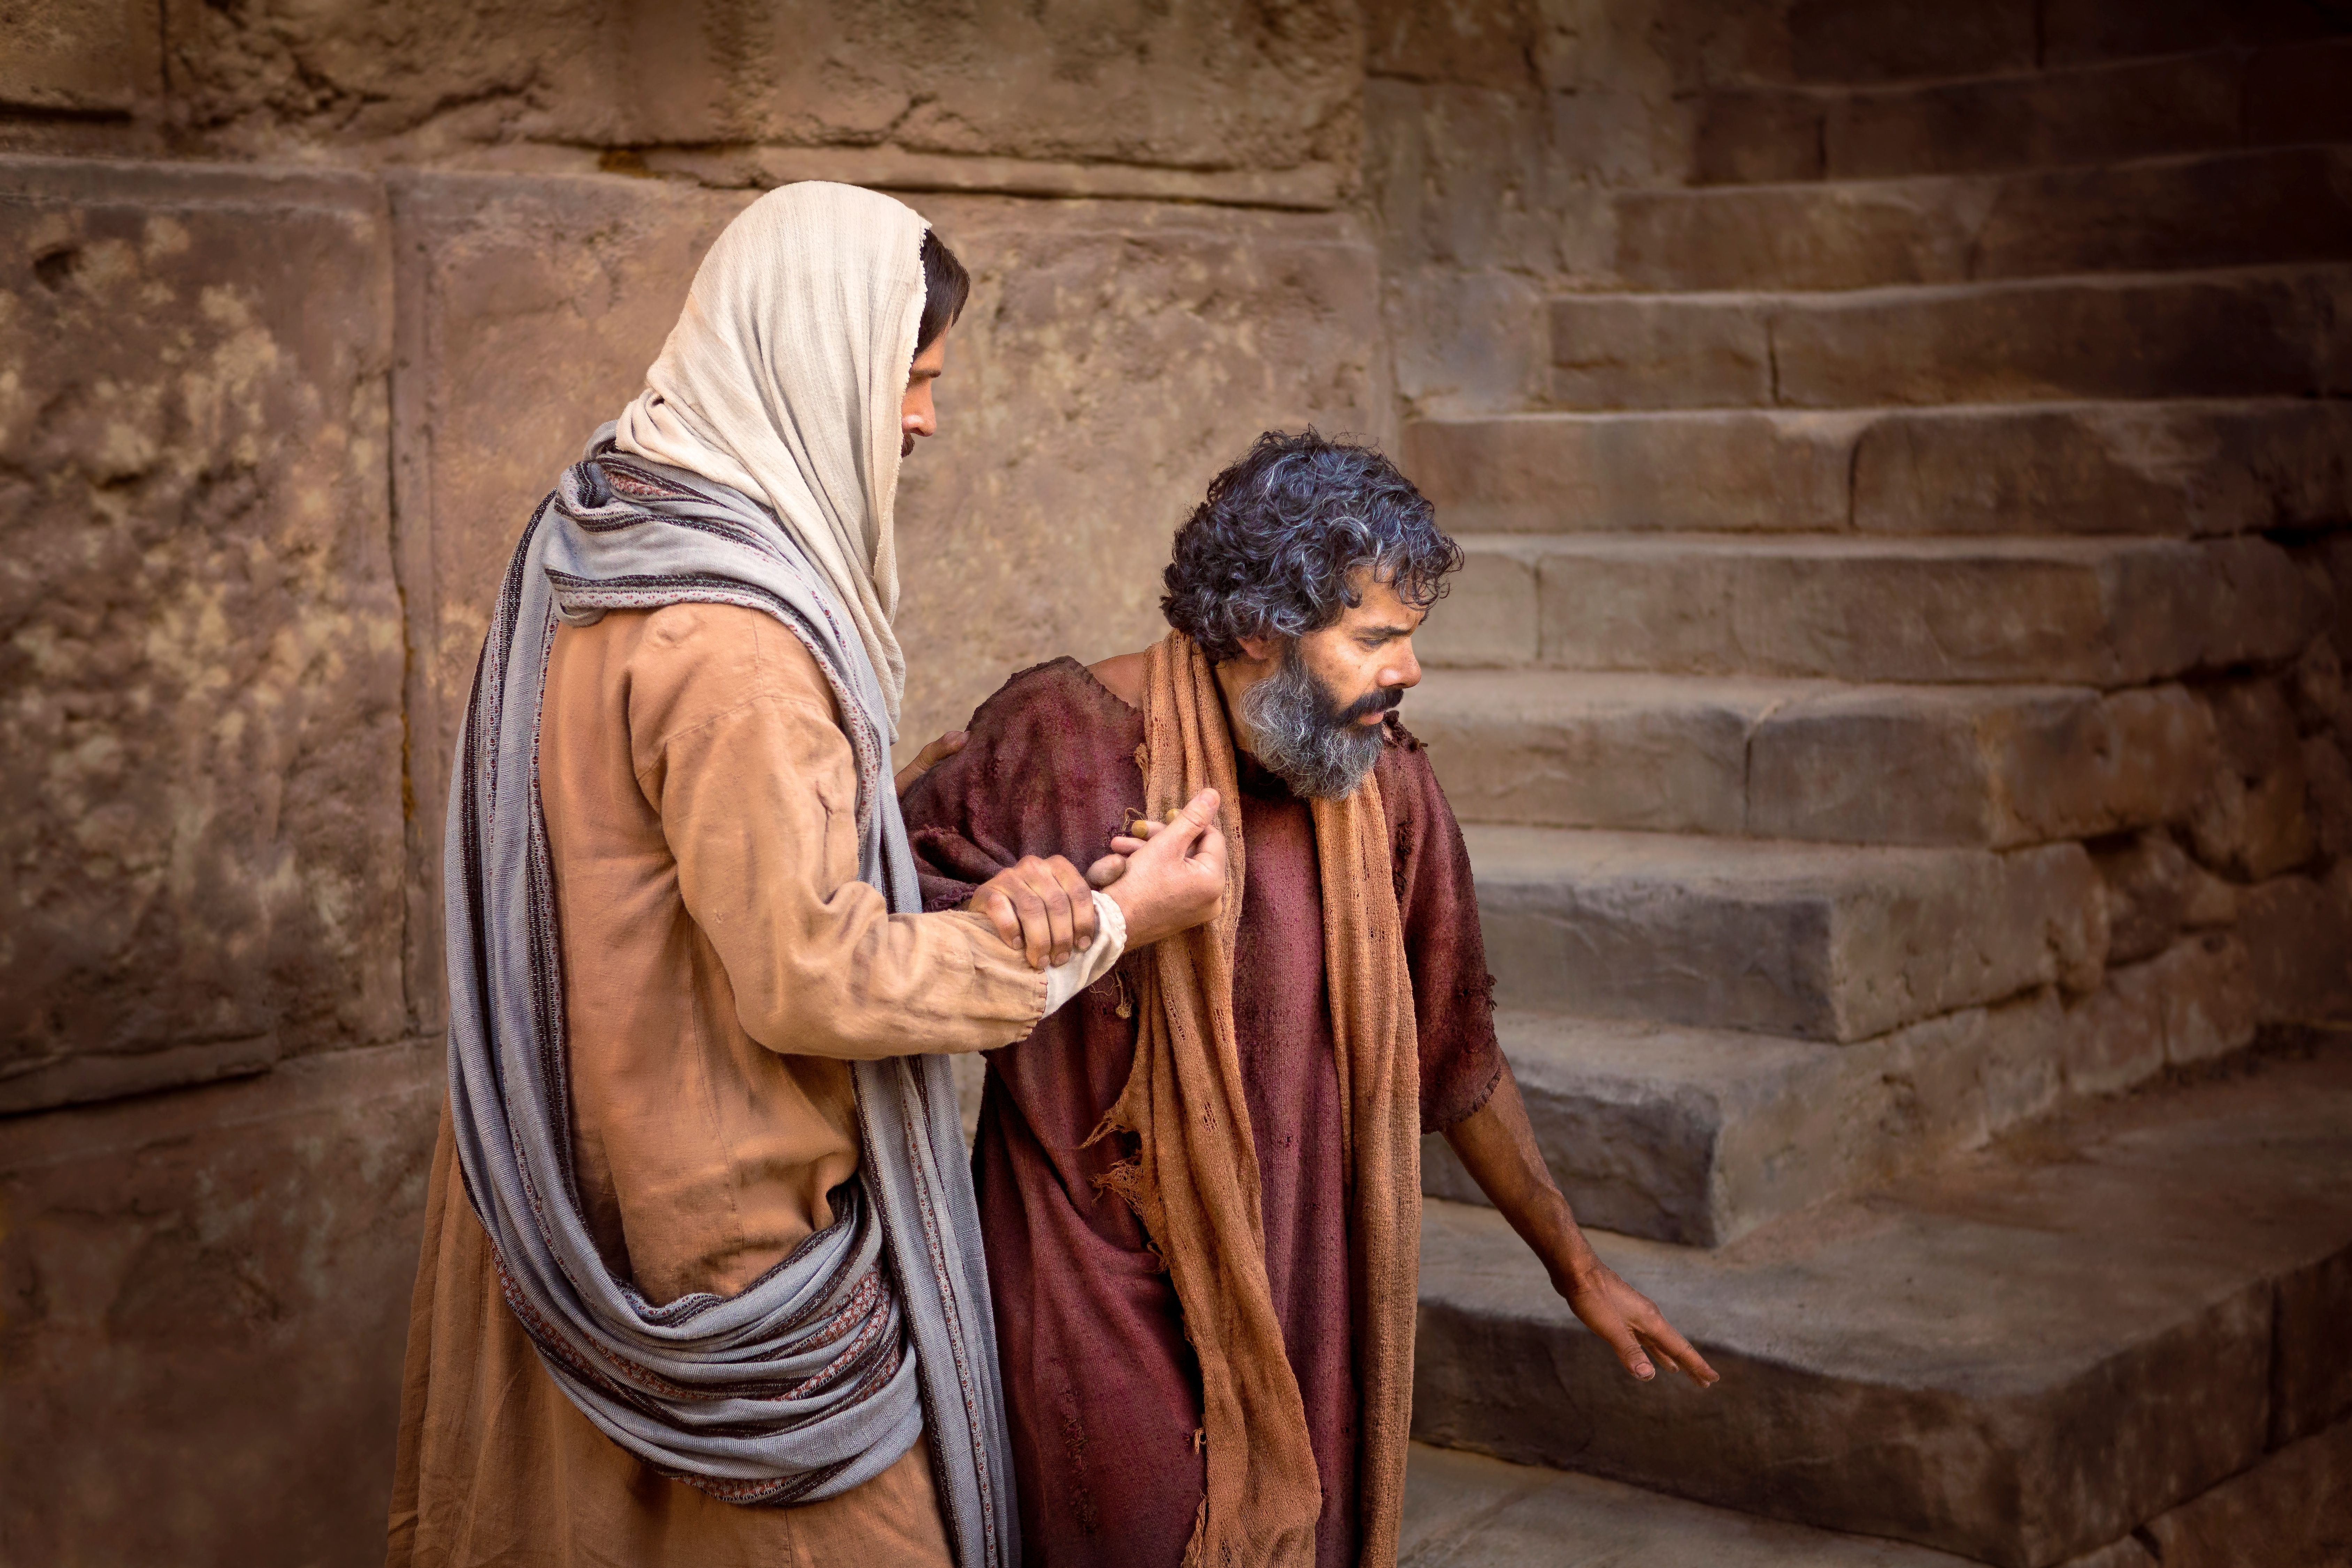 Jesus standing and healing a blind man.